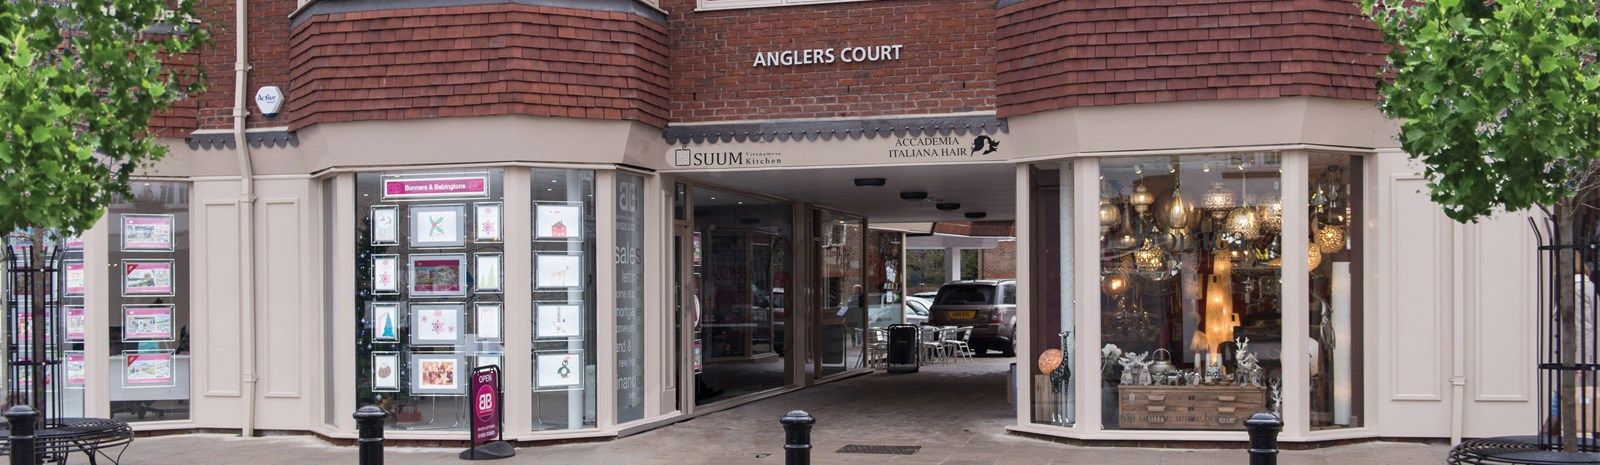 Anglers Court, Marlow